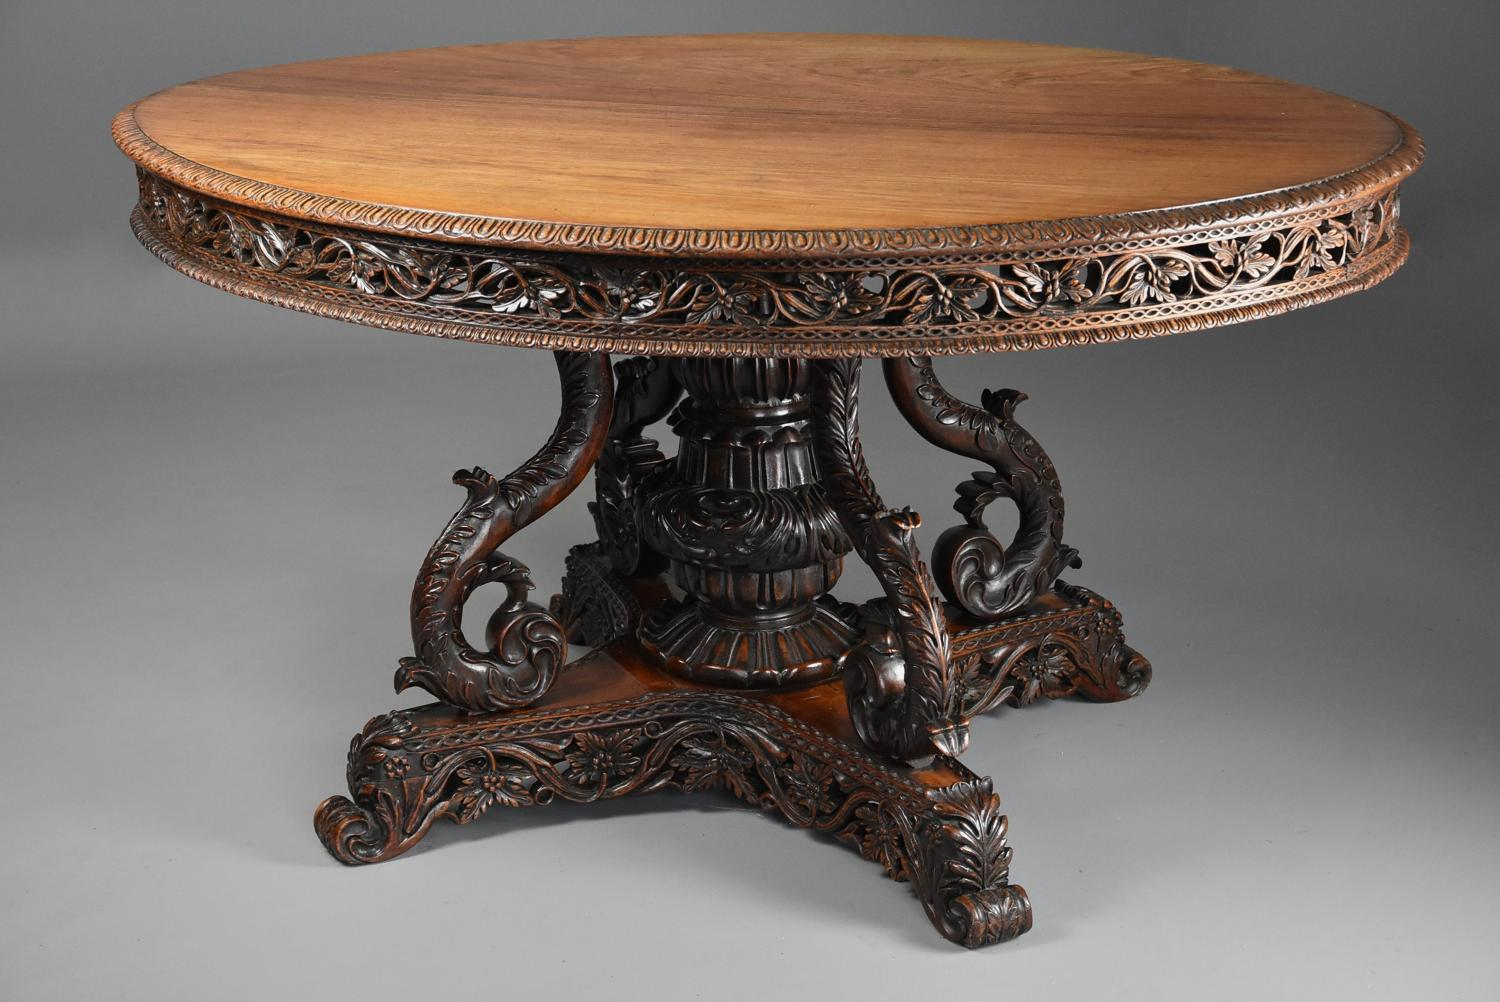 19thc Anglo Indian padouk oval centre table with superb faded patina